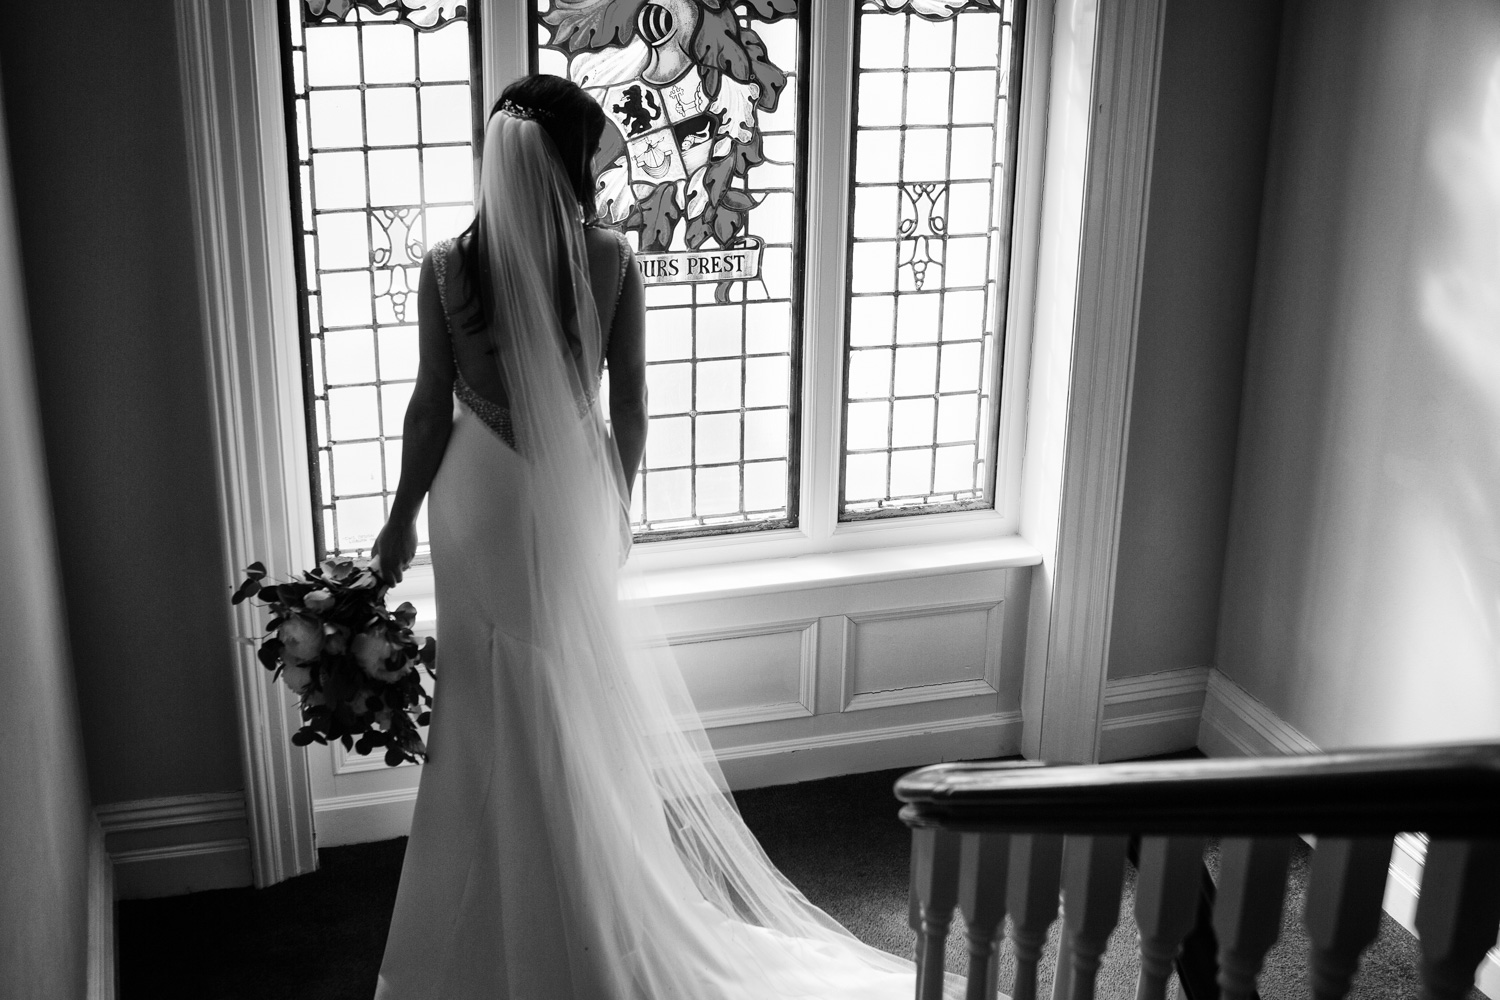 Mark_Barnes_Northern_Ireland_wedding_photographer_Kilmore_House_Wedding_photography_Kilmore_House_wedding_photographer-46.jpg